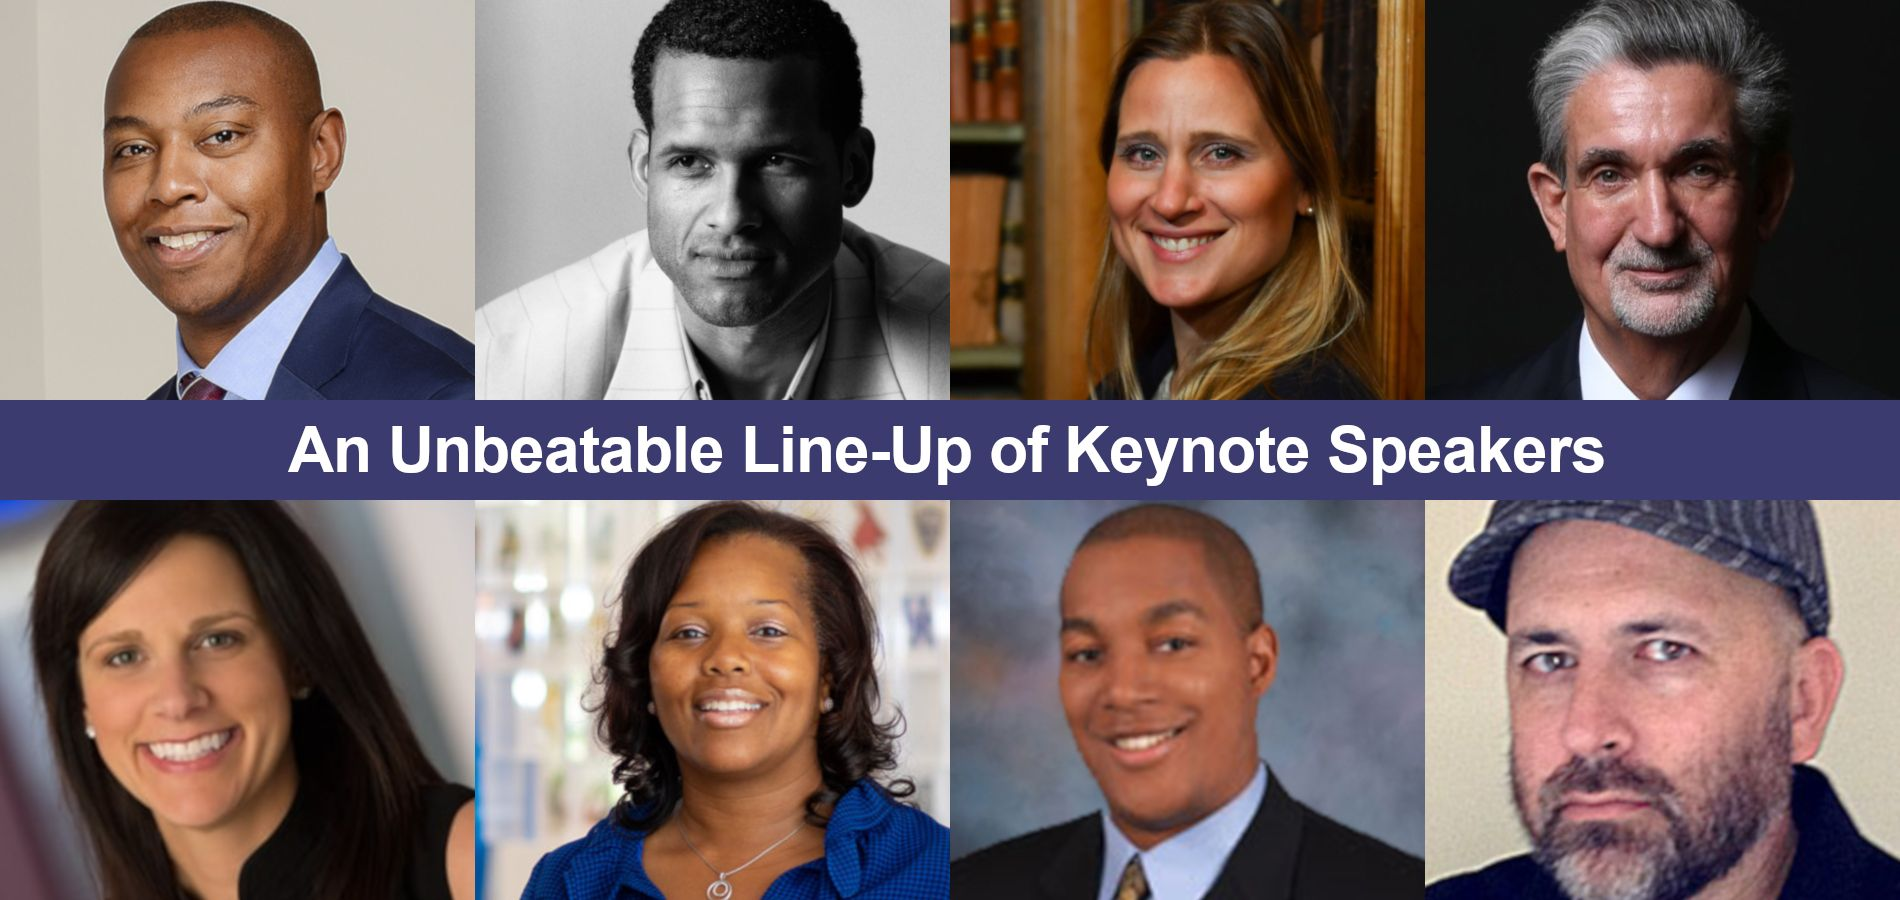 An Unbeatable Line-Up of Keynote Speakers